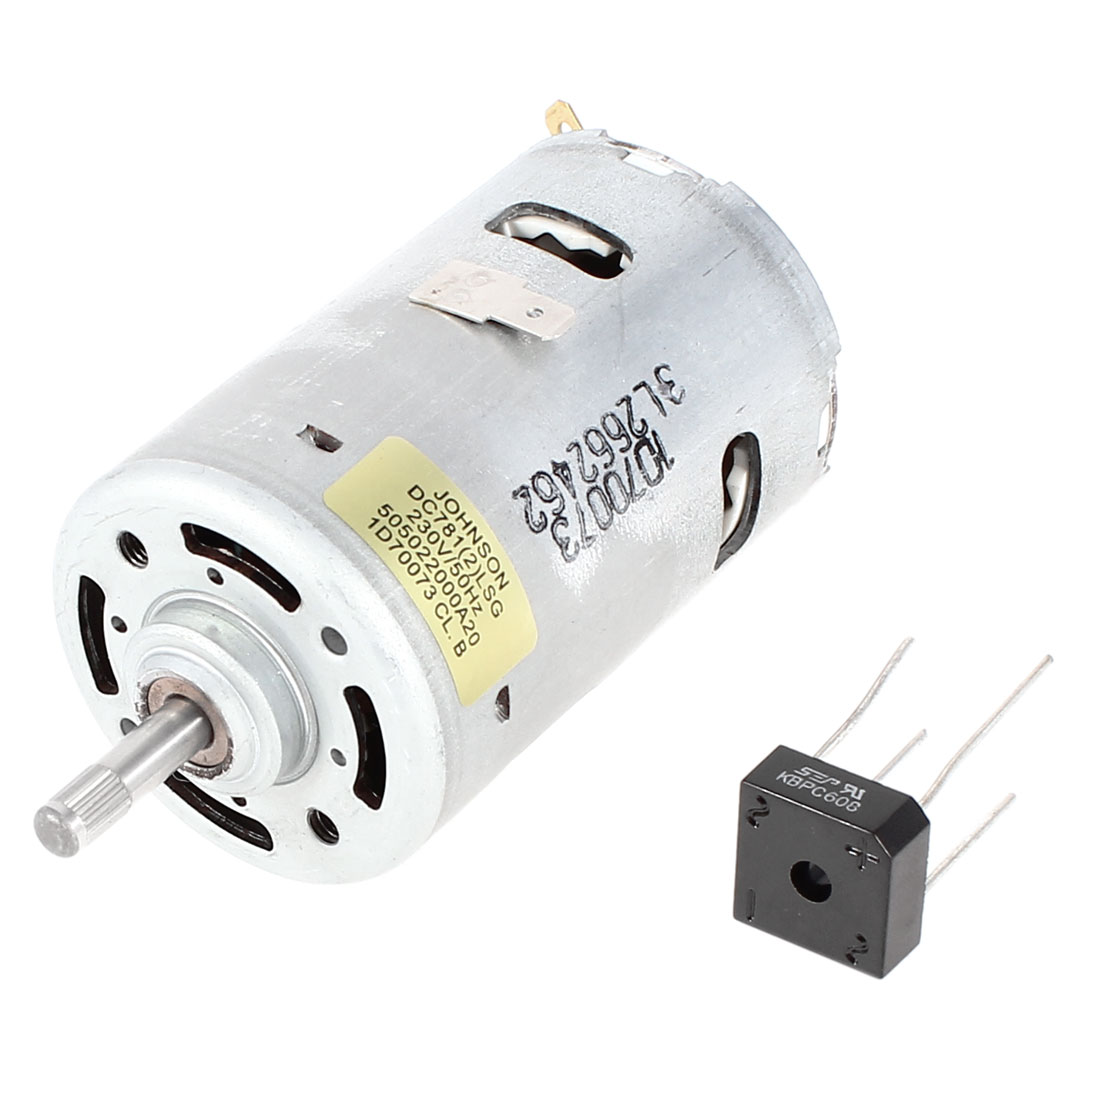 DC781 DC 220V 12700RPM Speed High Voltage Cylinder Shaped Micro Electric Motor